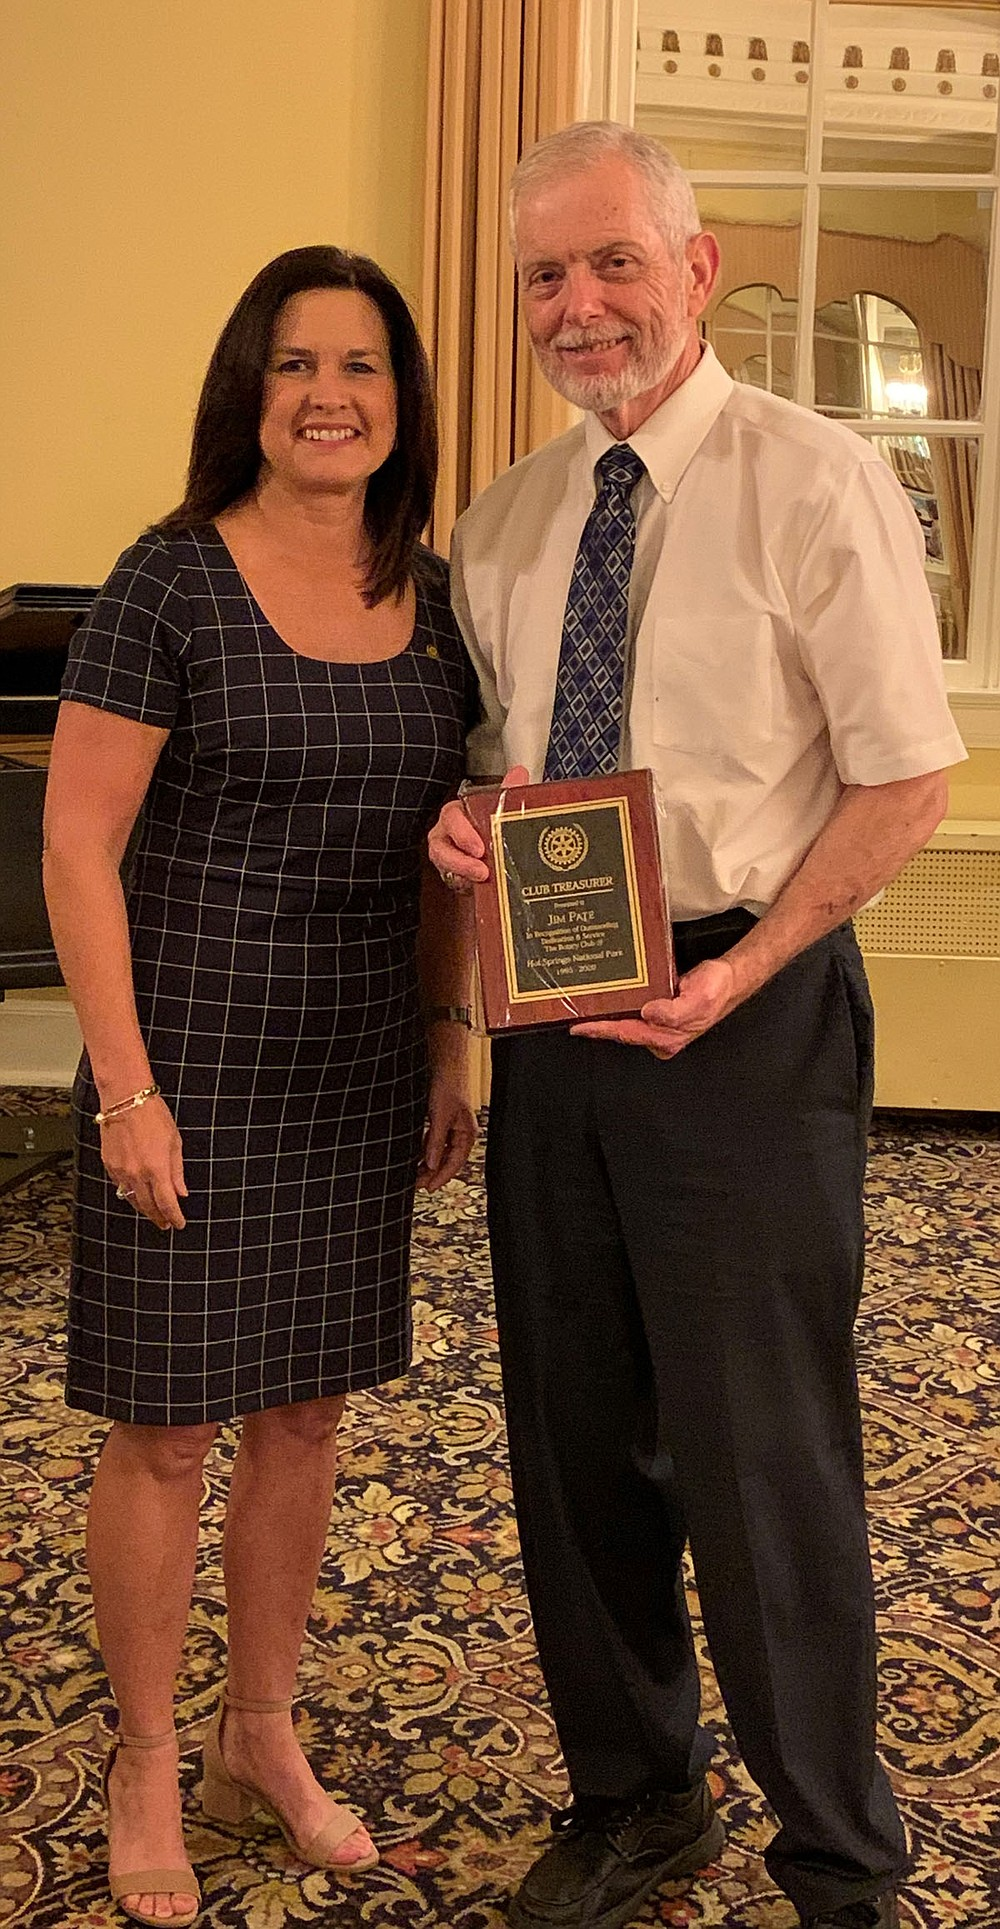 Michelle Ratcliff, left, immediate past president, with Jim Pate, who has served as club treasurer for 24 years. - Submitted photo